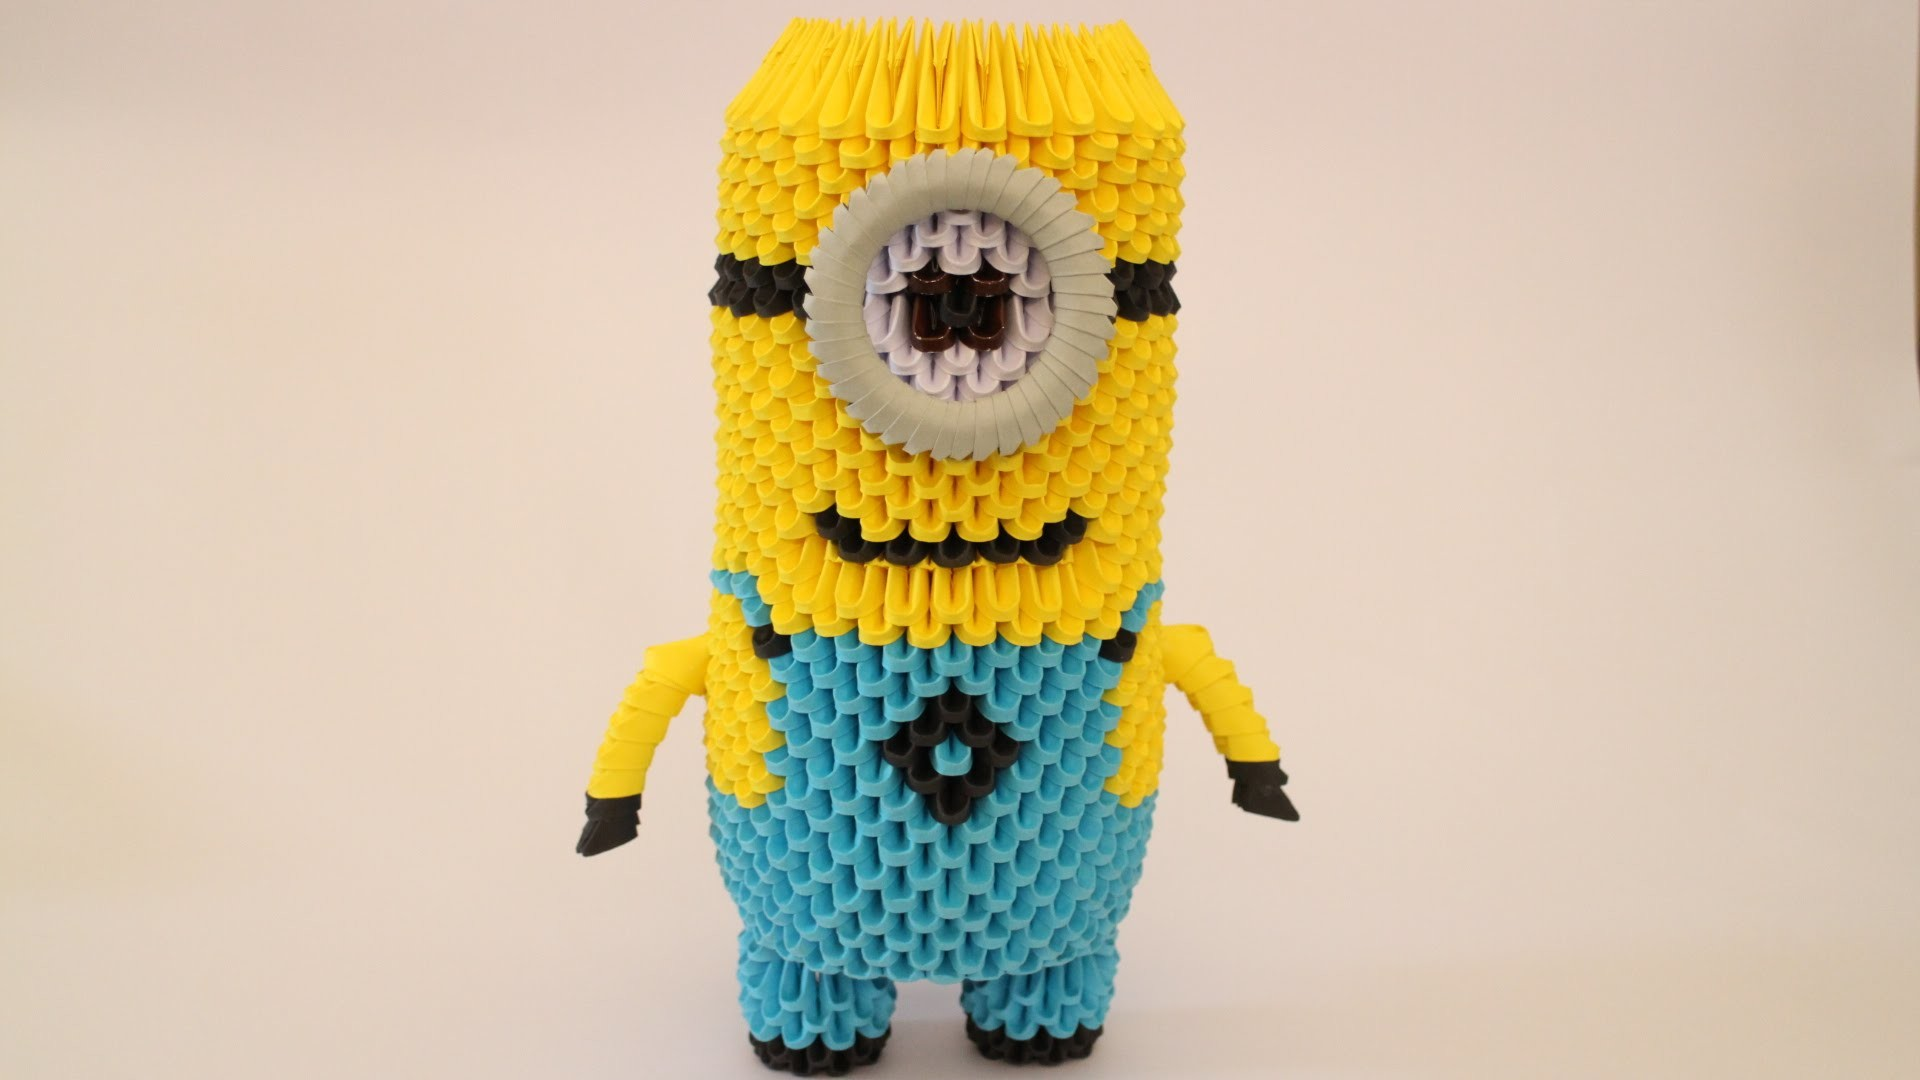 How To: 3D Origami Minion - Part 2